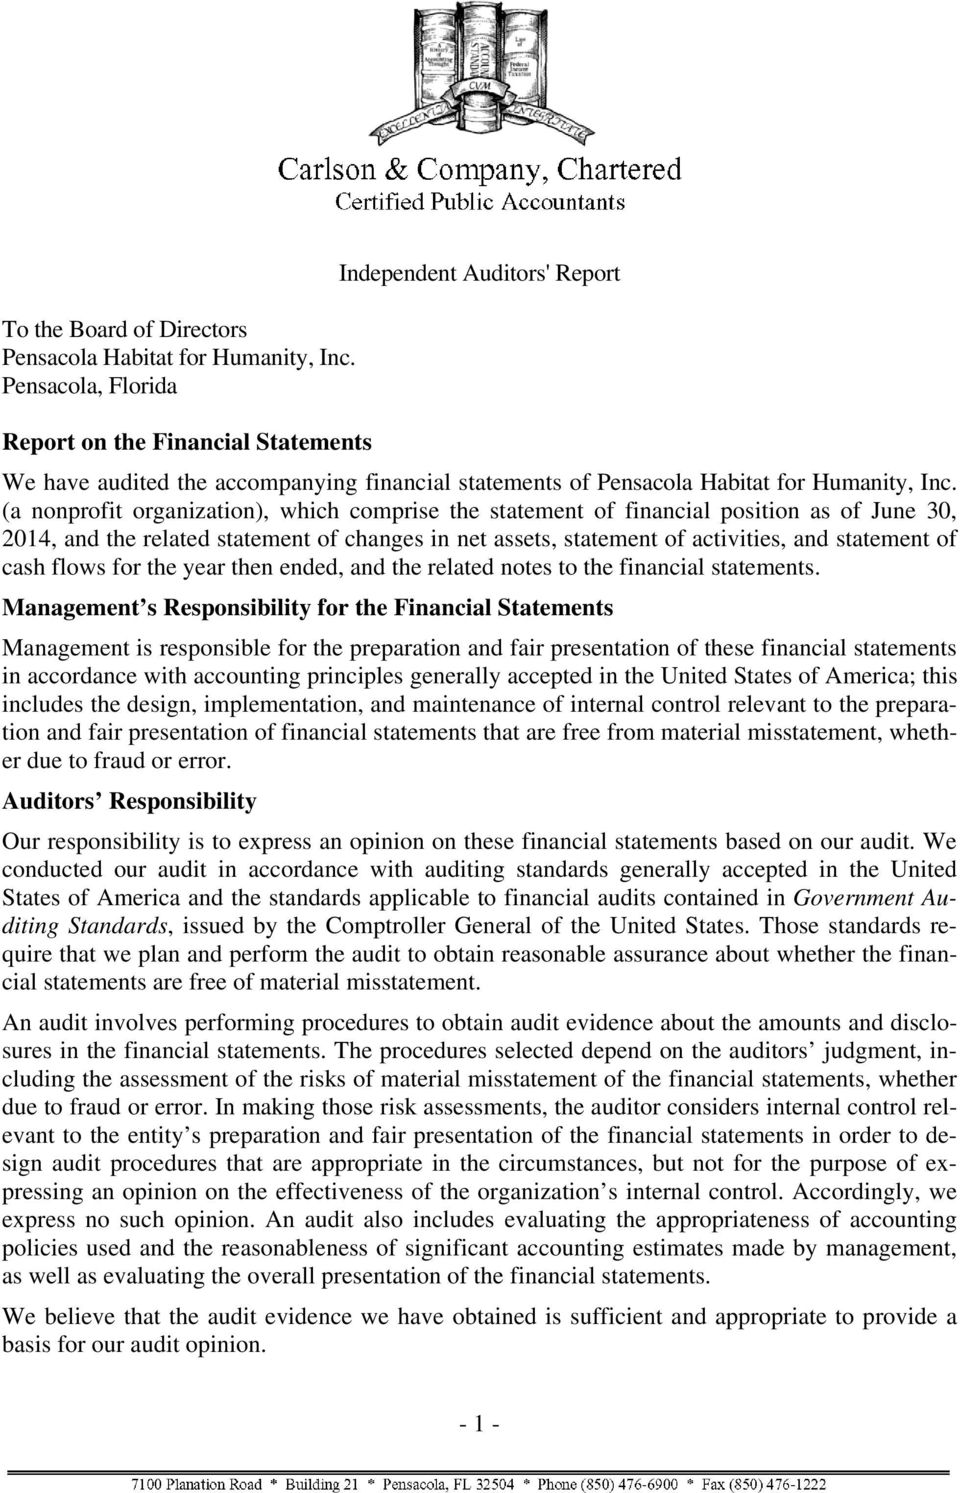 (a nonprofit organization), which comprise the statement of financial position as of June 30, 2014, and the related statement of changes in net assets, statement of activities, and statement of cash